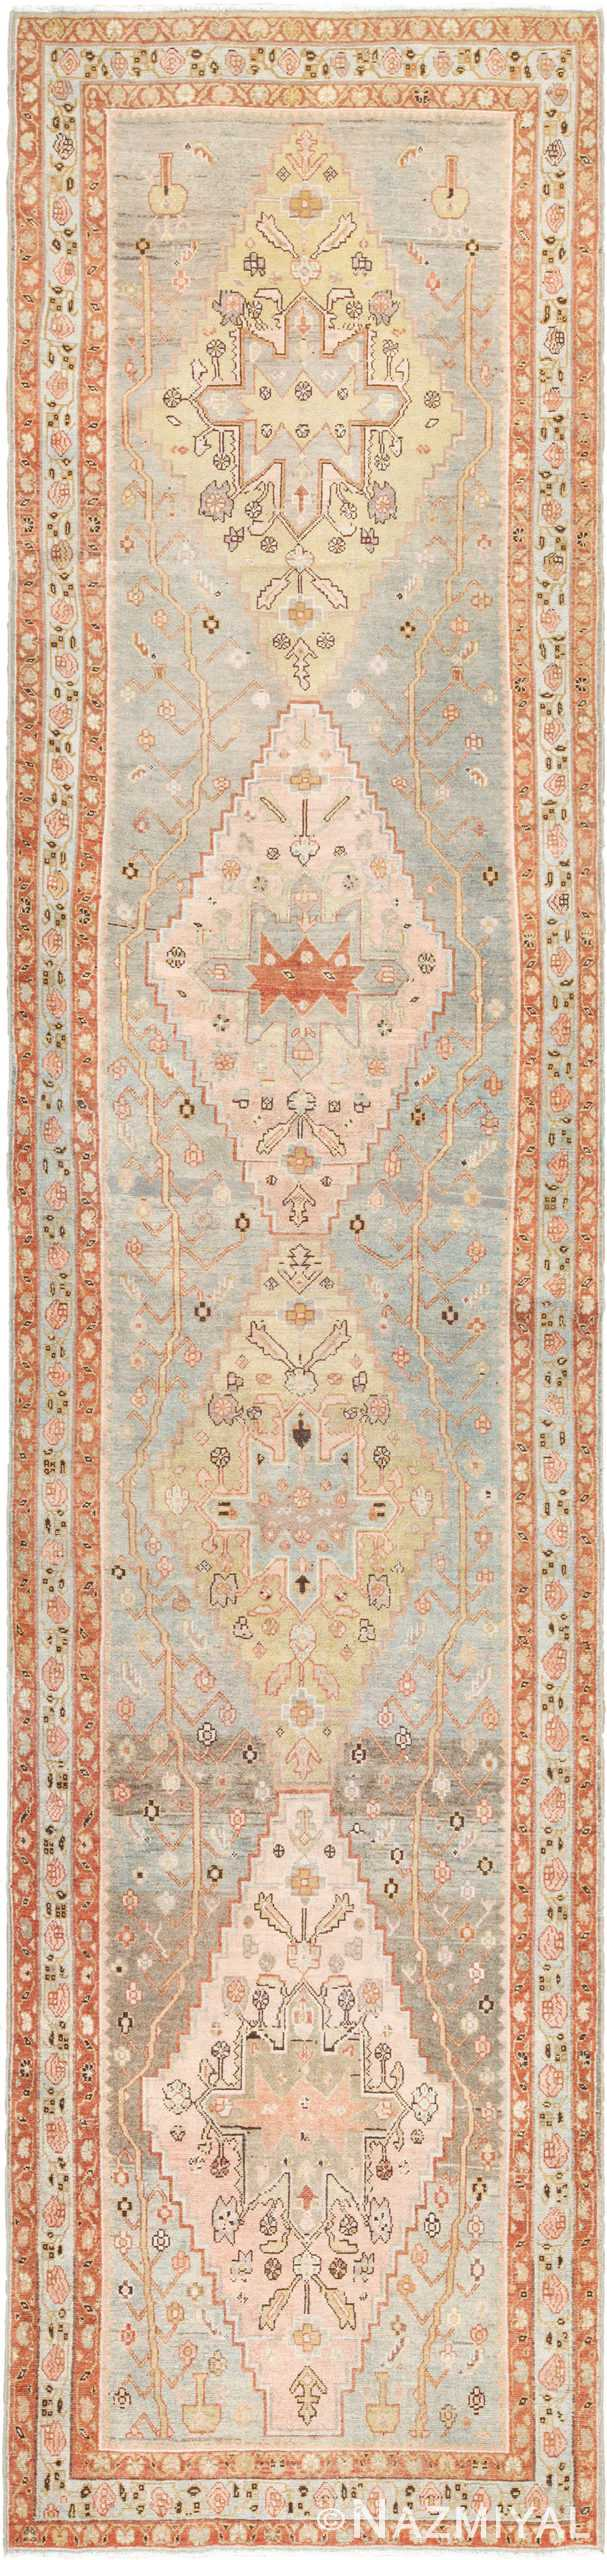 Tribal Decorative Antique Persian Malayer Runner Rug 49626 by Nazmiyal